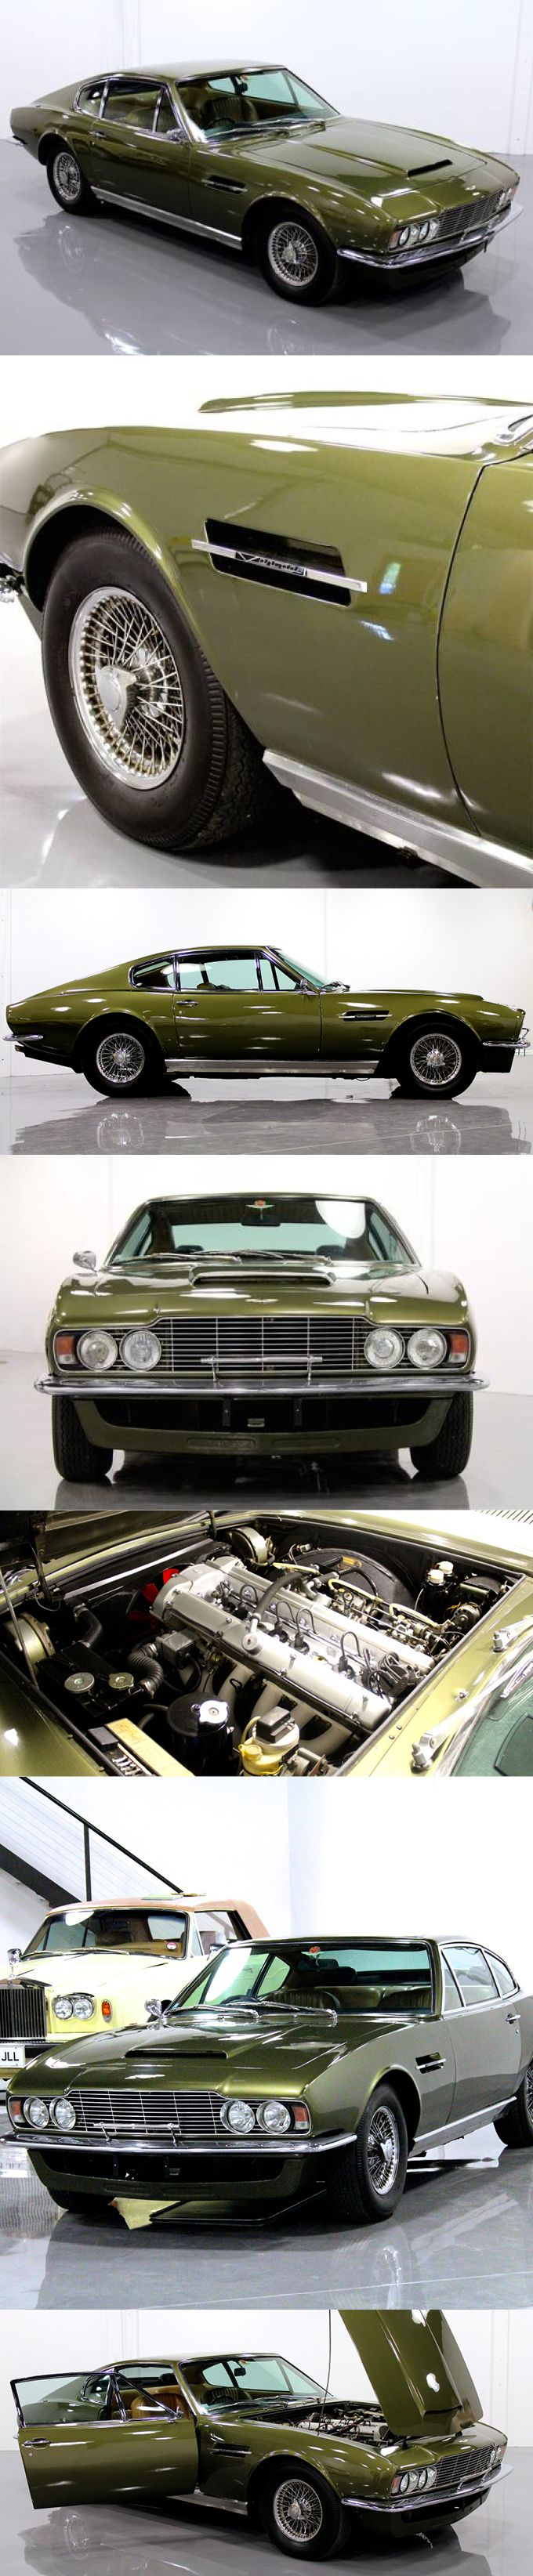 1970 Aston Martin DBS Vantage / 325hp 4.0l L6 / William Towns / UK / green / William Towns / 17-278 http://amzn.to/2sU00bB